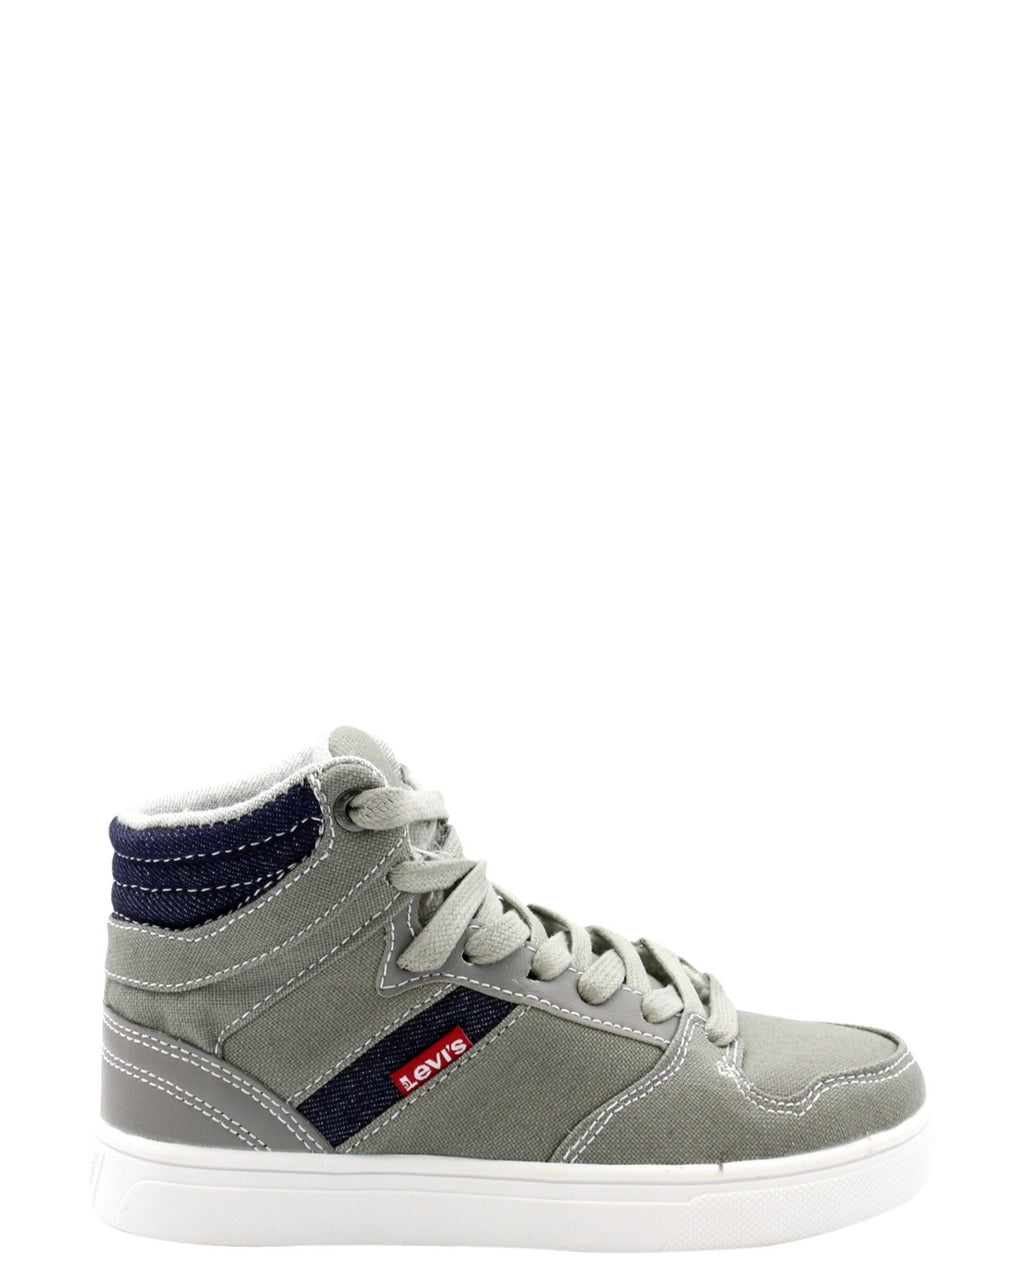 Boy's Brentwood Core Hi-Top Sneakers (PreSchool)